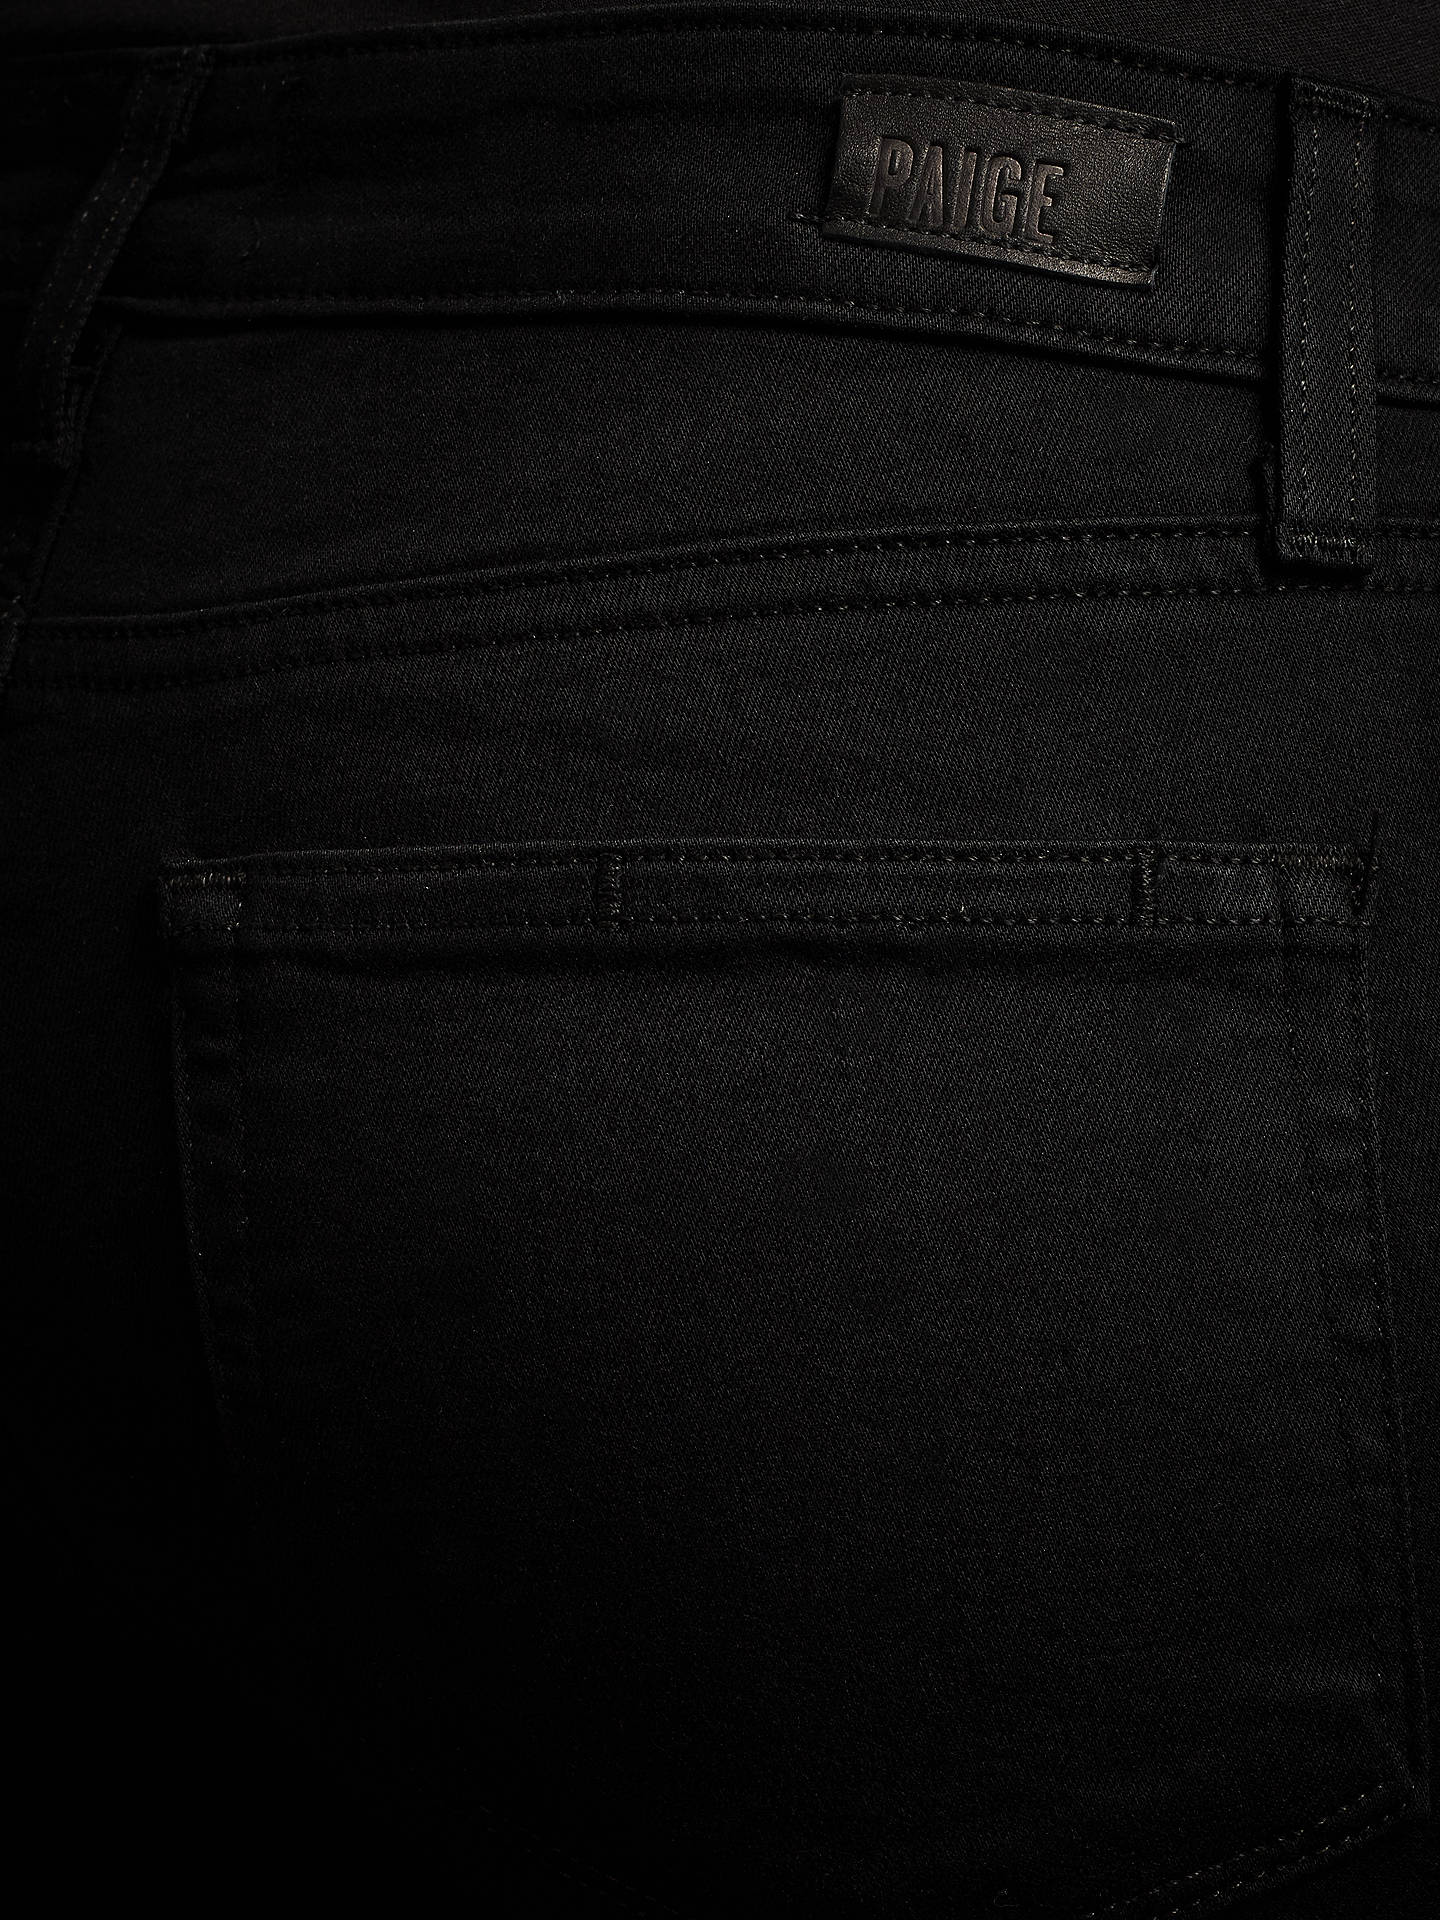 BuyPaige Skyline Bootcut Jeans, Black Shadow, 26 Online at johnlewis.com